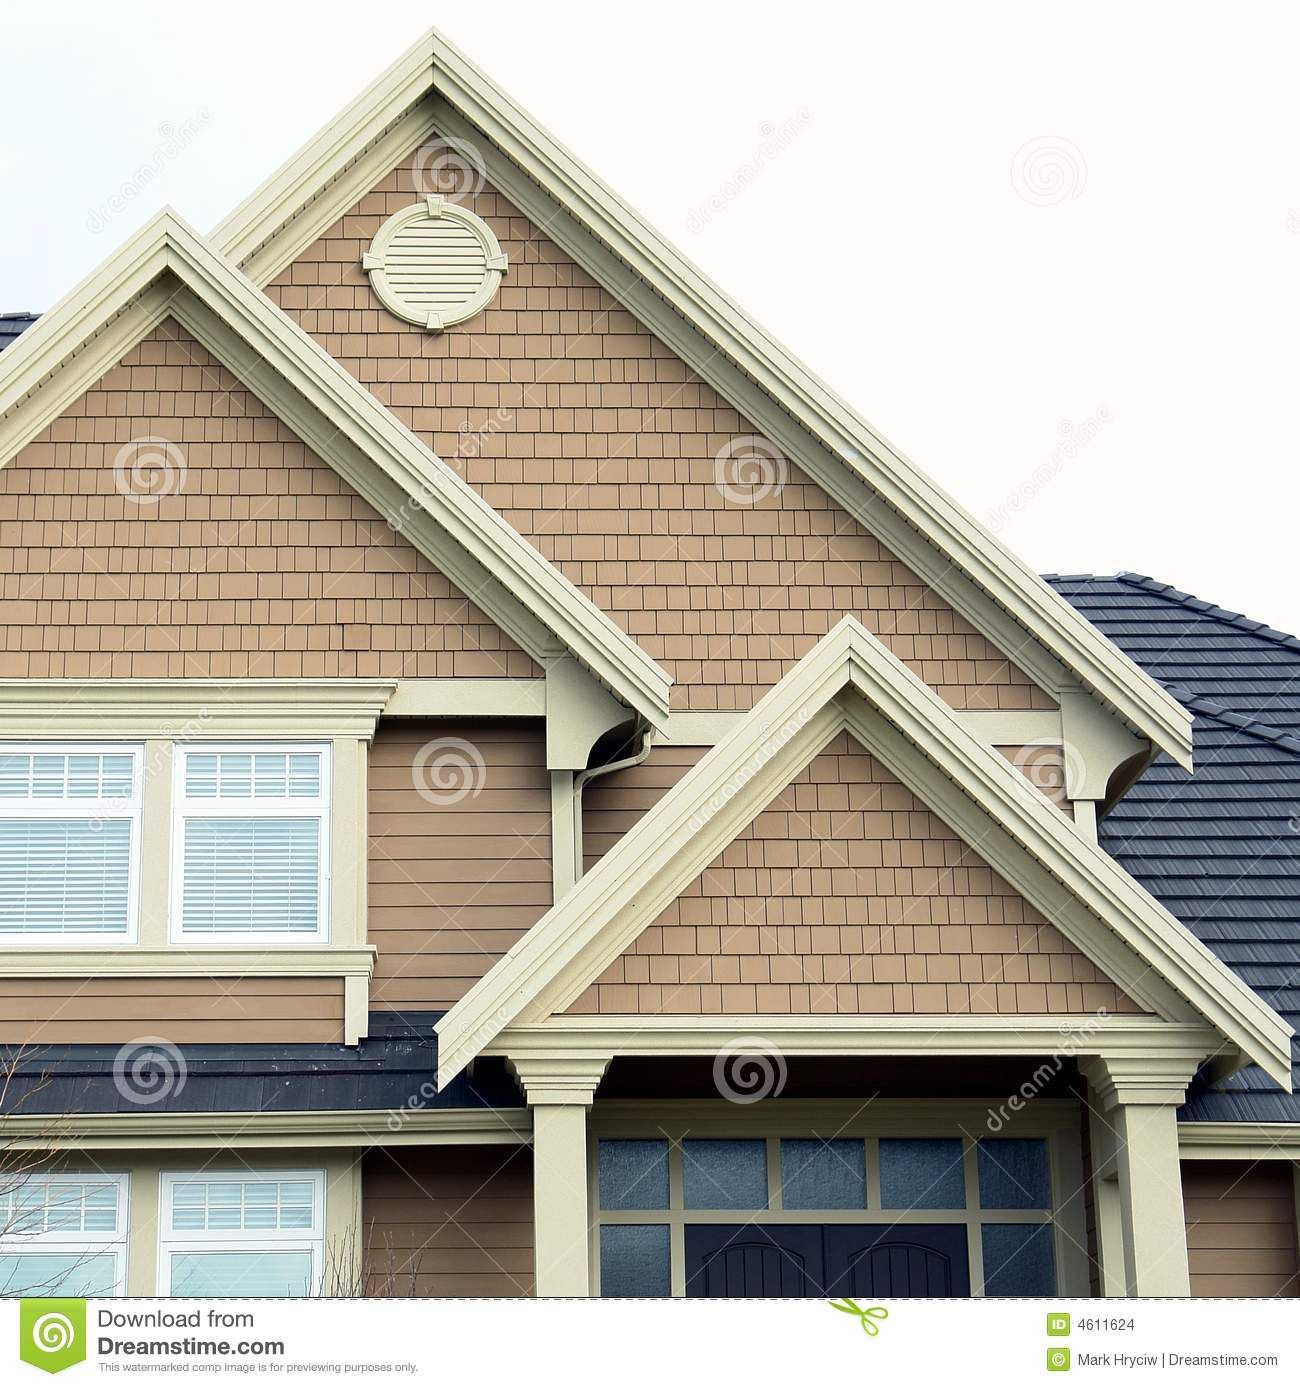 Gable roof within gable designs home house roof siding peaks stock images image 4611624 for Exterior house peak decorations